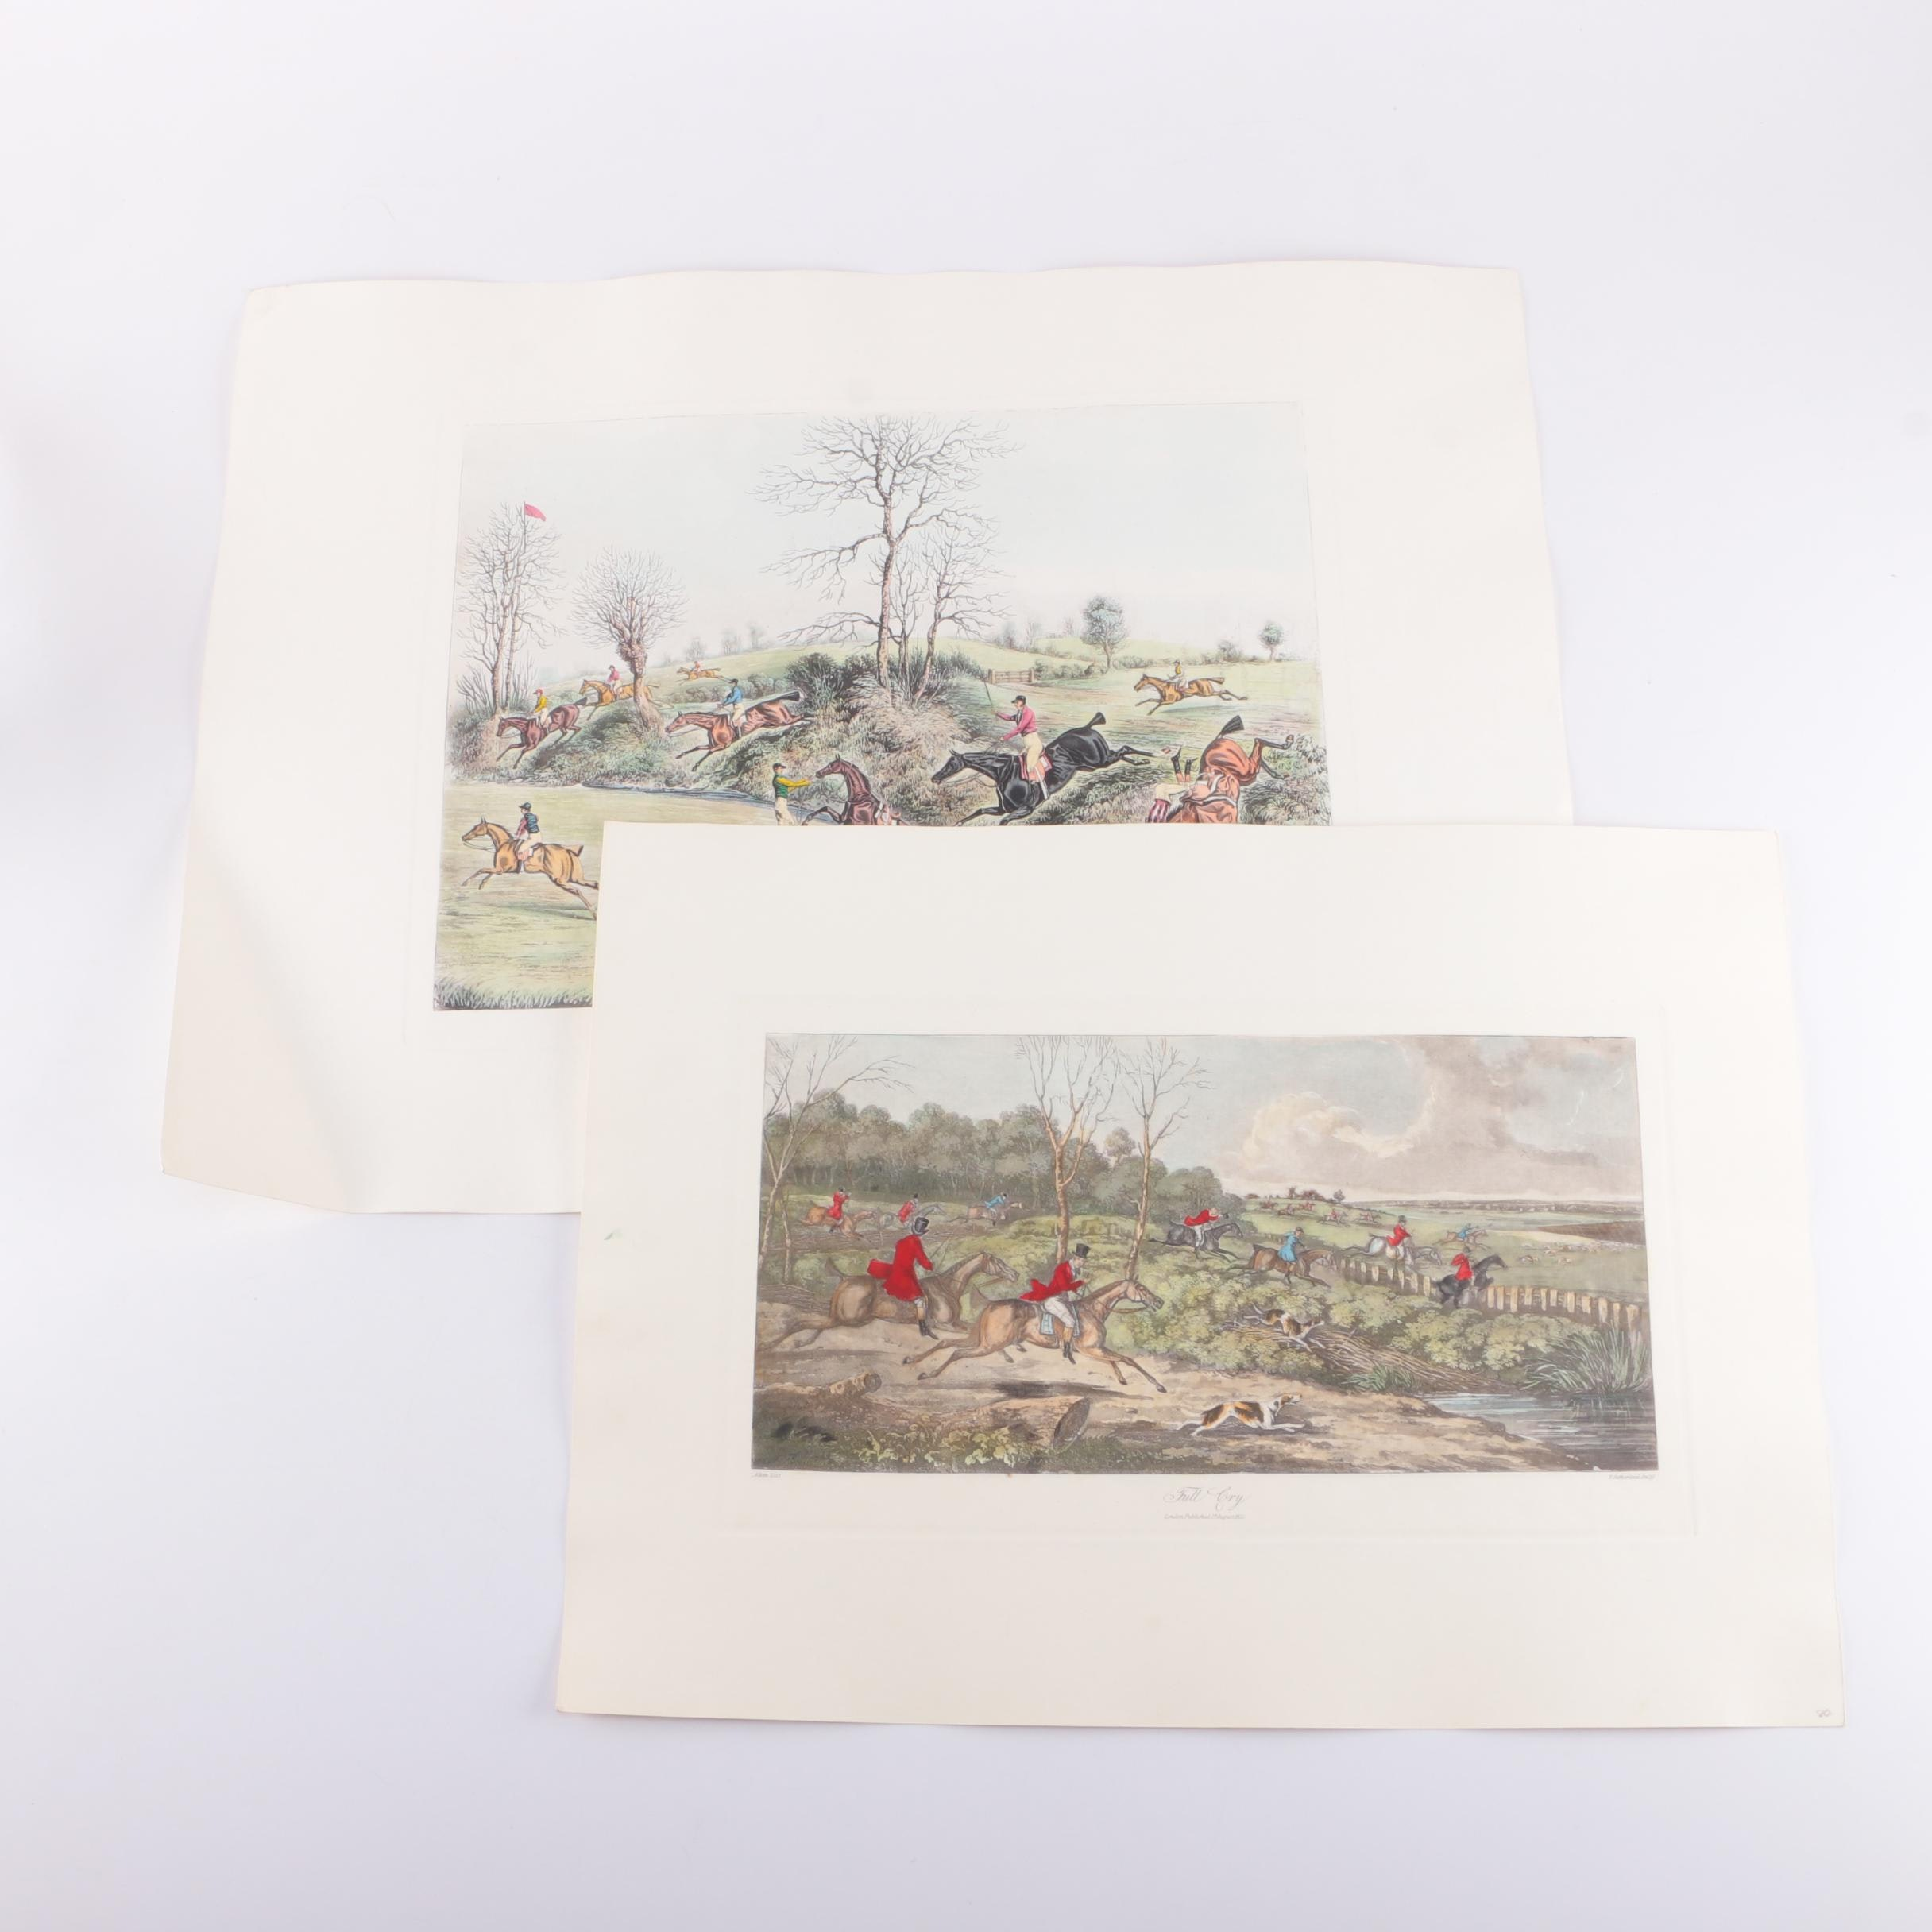 Hand-Colored Engravings After Original Hunting Scenes